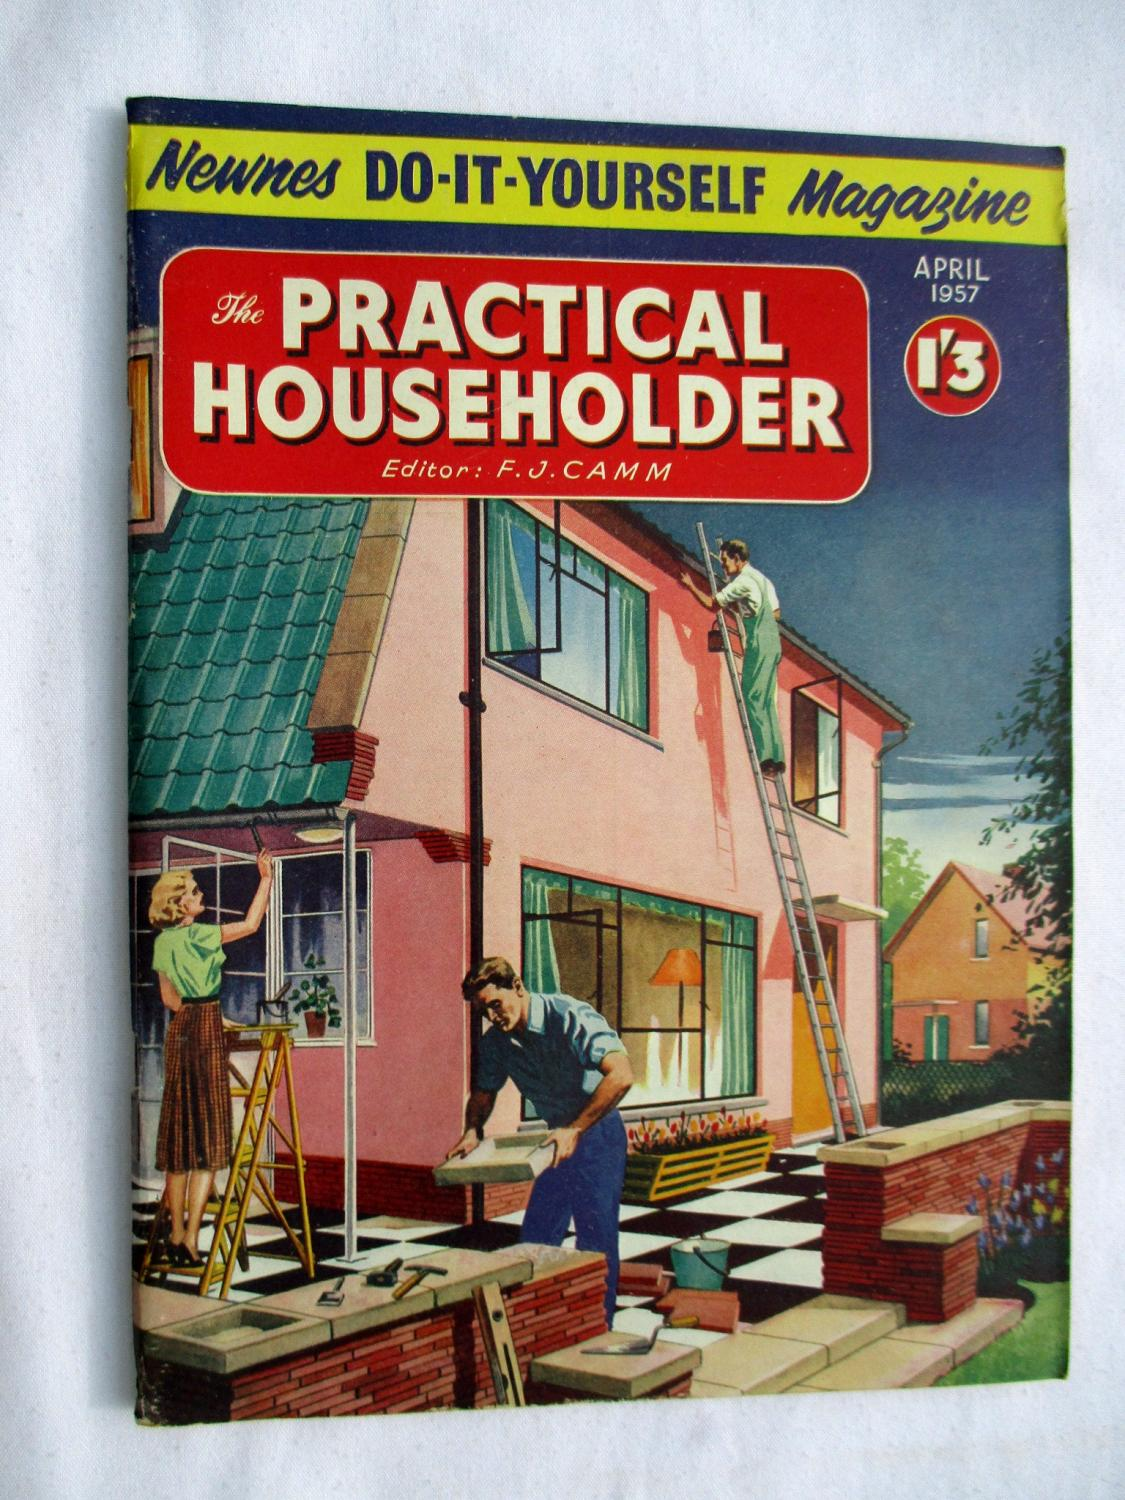 The practical householder april 1957 newnes do it yourself the practical householder april 1957 newnes do it yourself magazine camm solutioingenieria Gallery